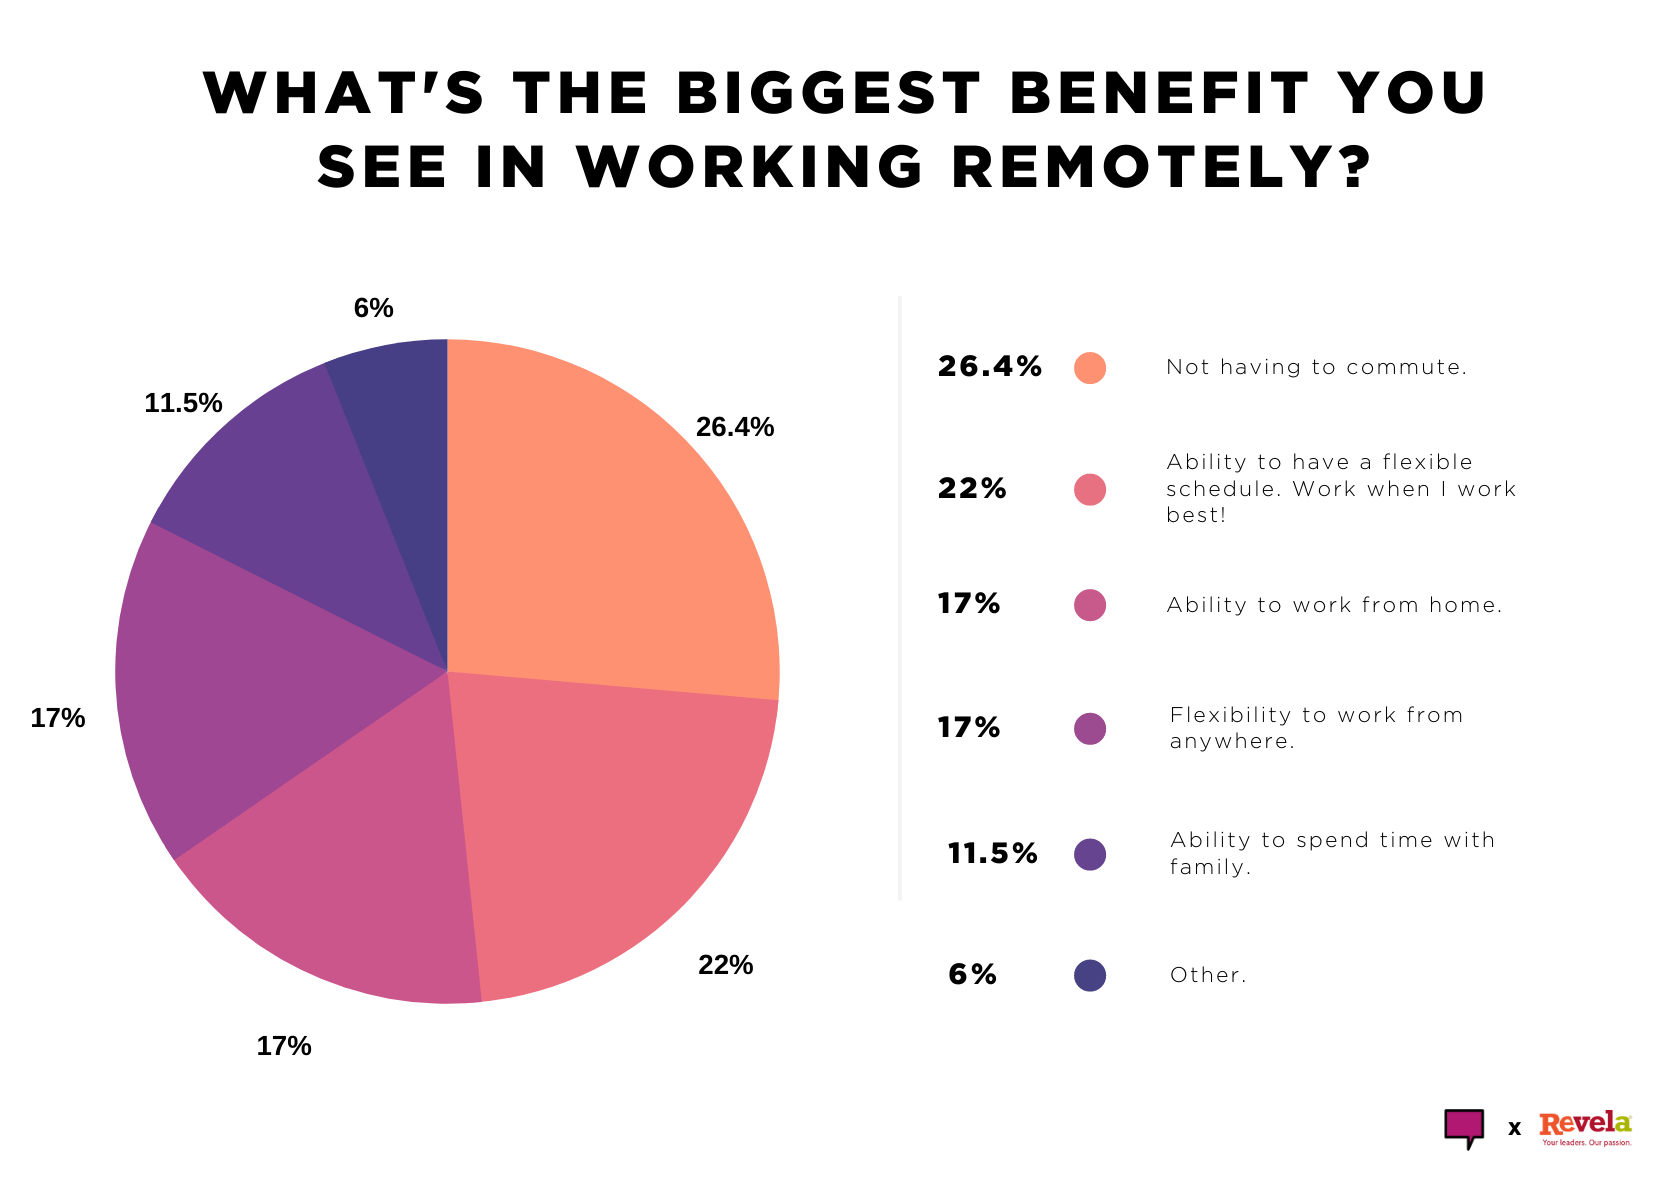 What's the biggest benefit you see in working remotely?